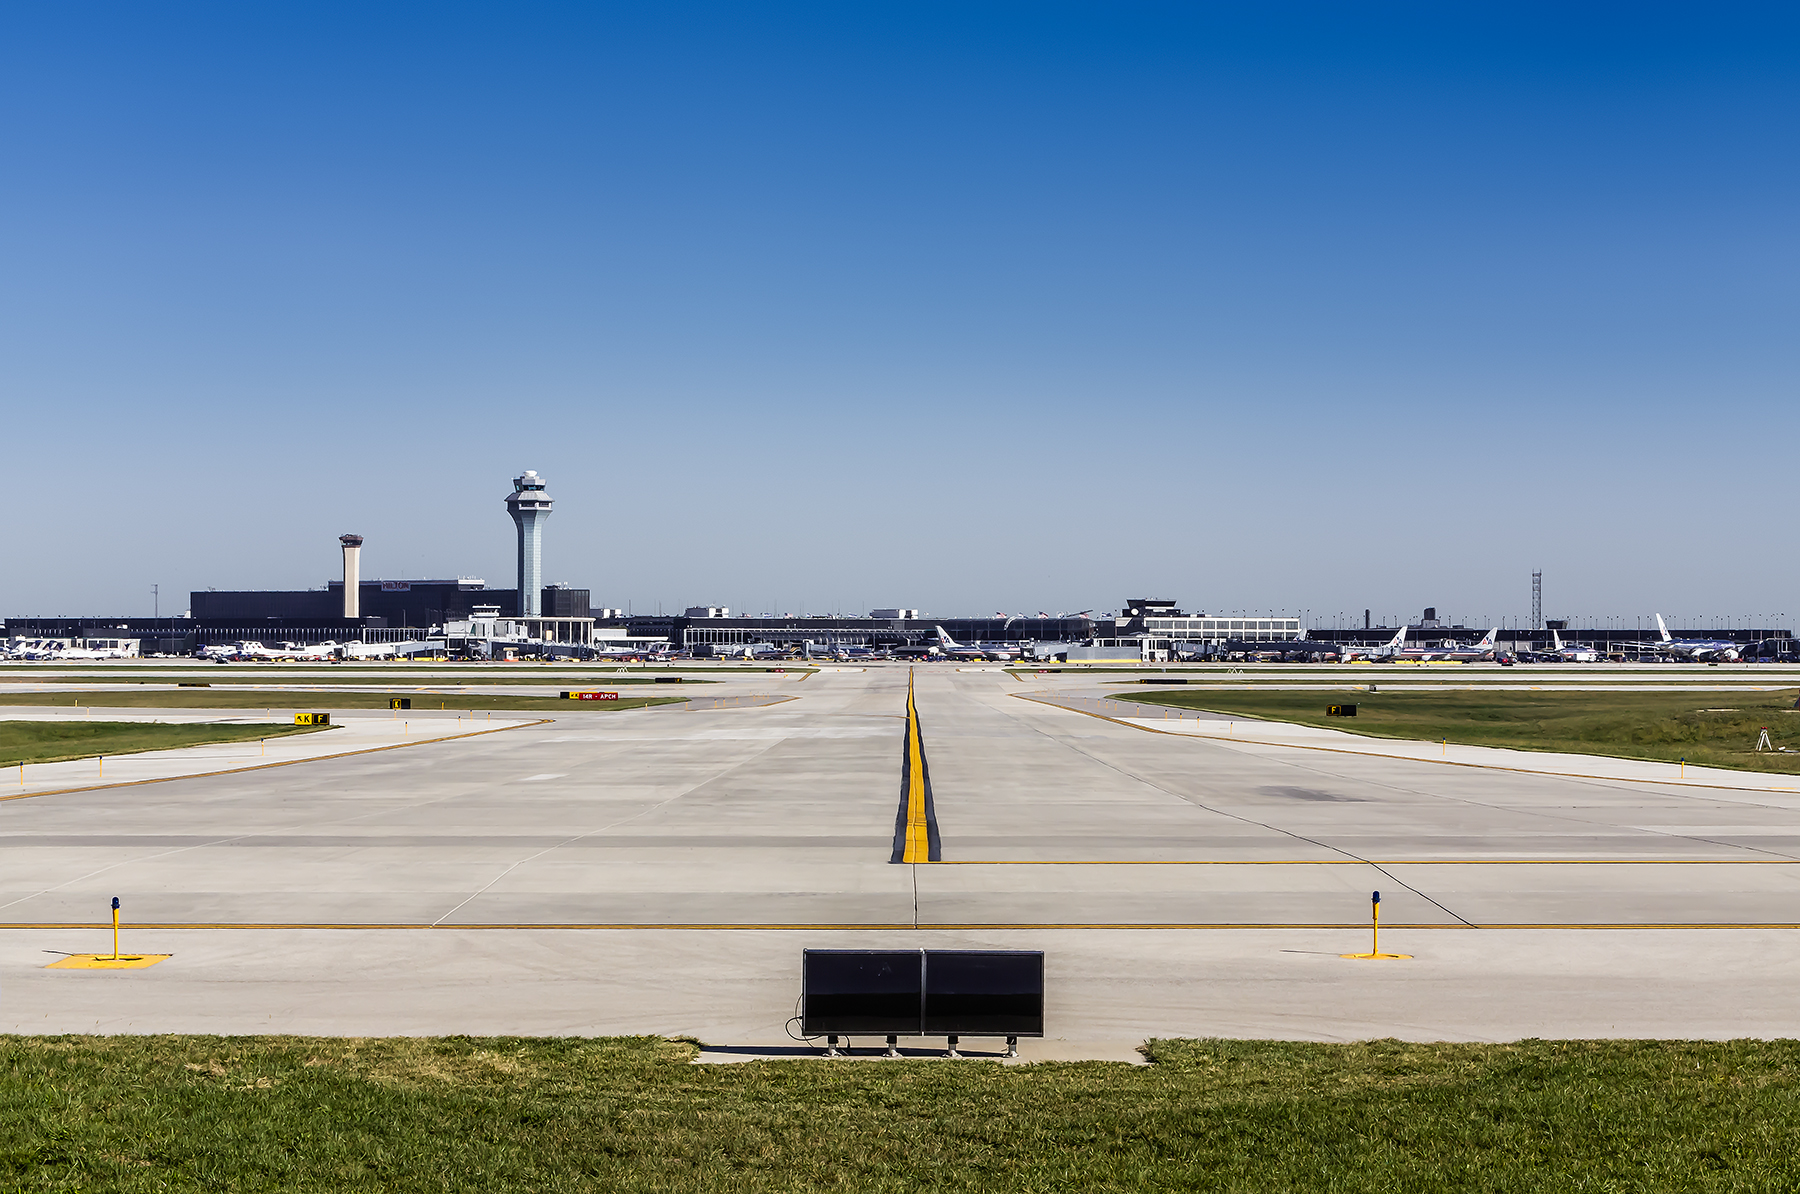 03-OHare-Taxiway-ZS-Chicago-Illinois-Ele